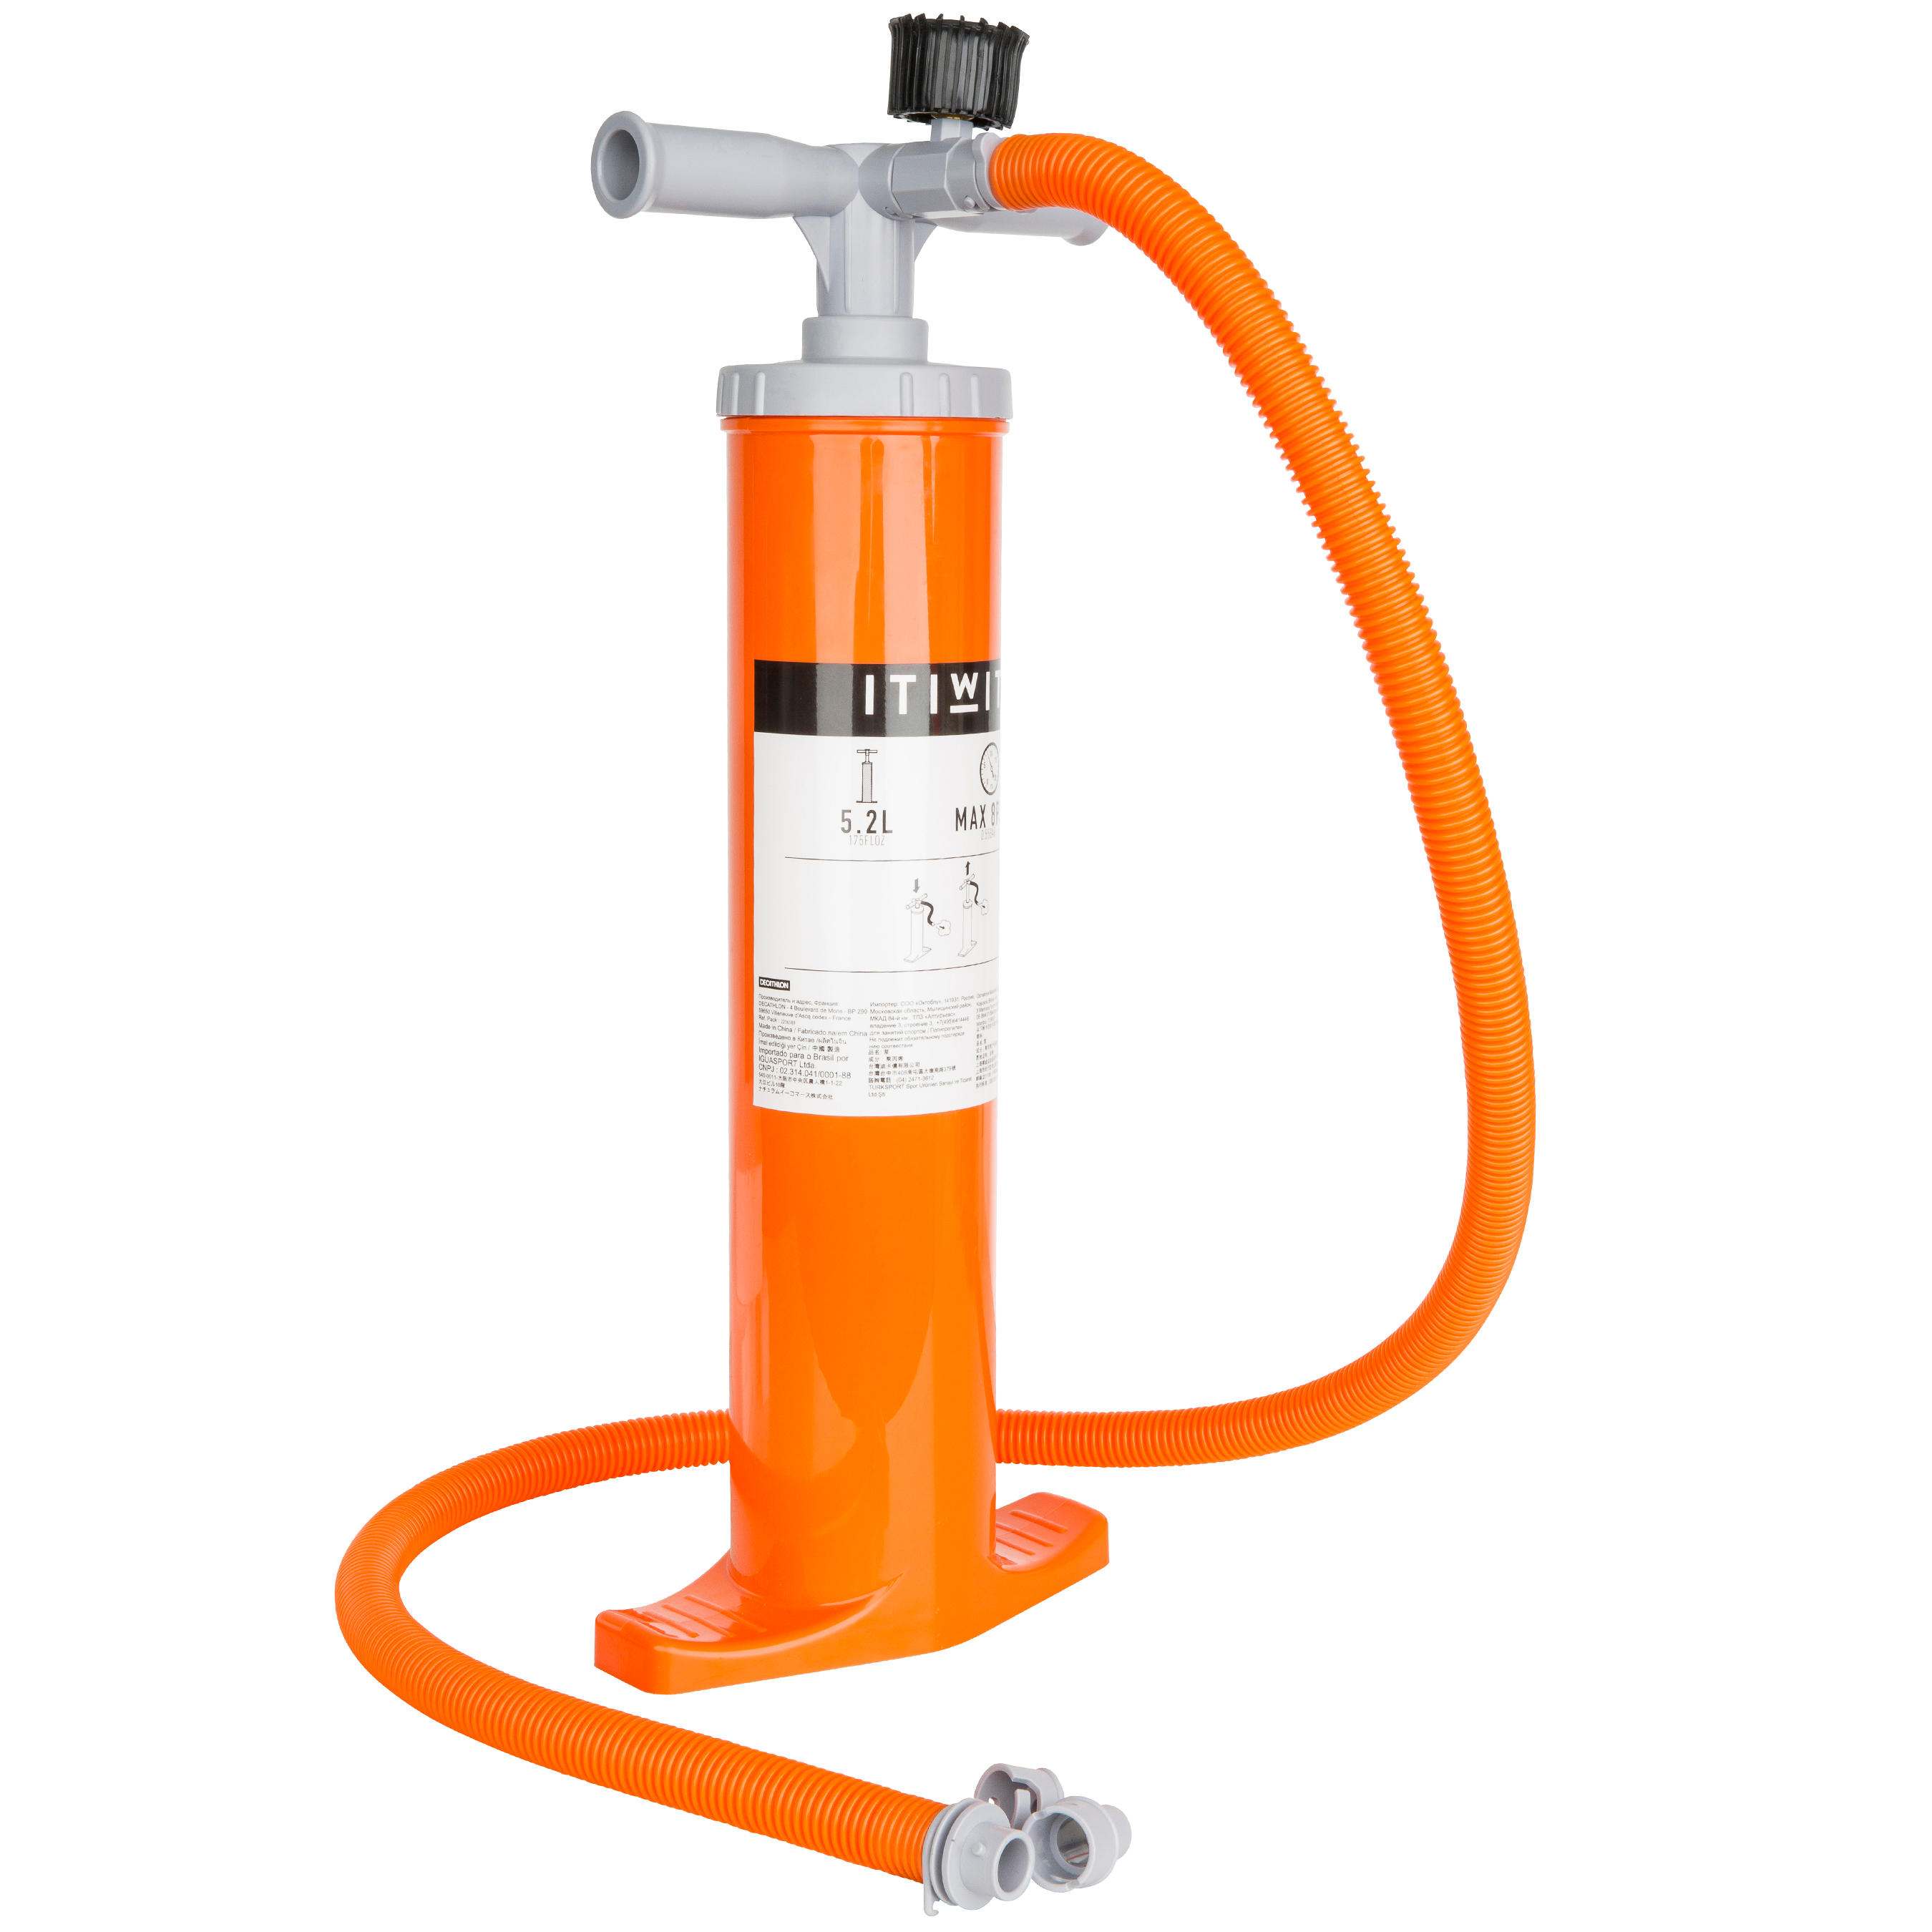 BOMBA MANUAL DOBLE ACCIÓN KAYAK 2 X 2,6L NARANJA